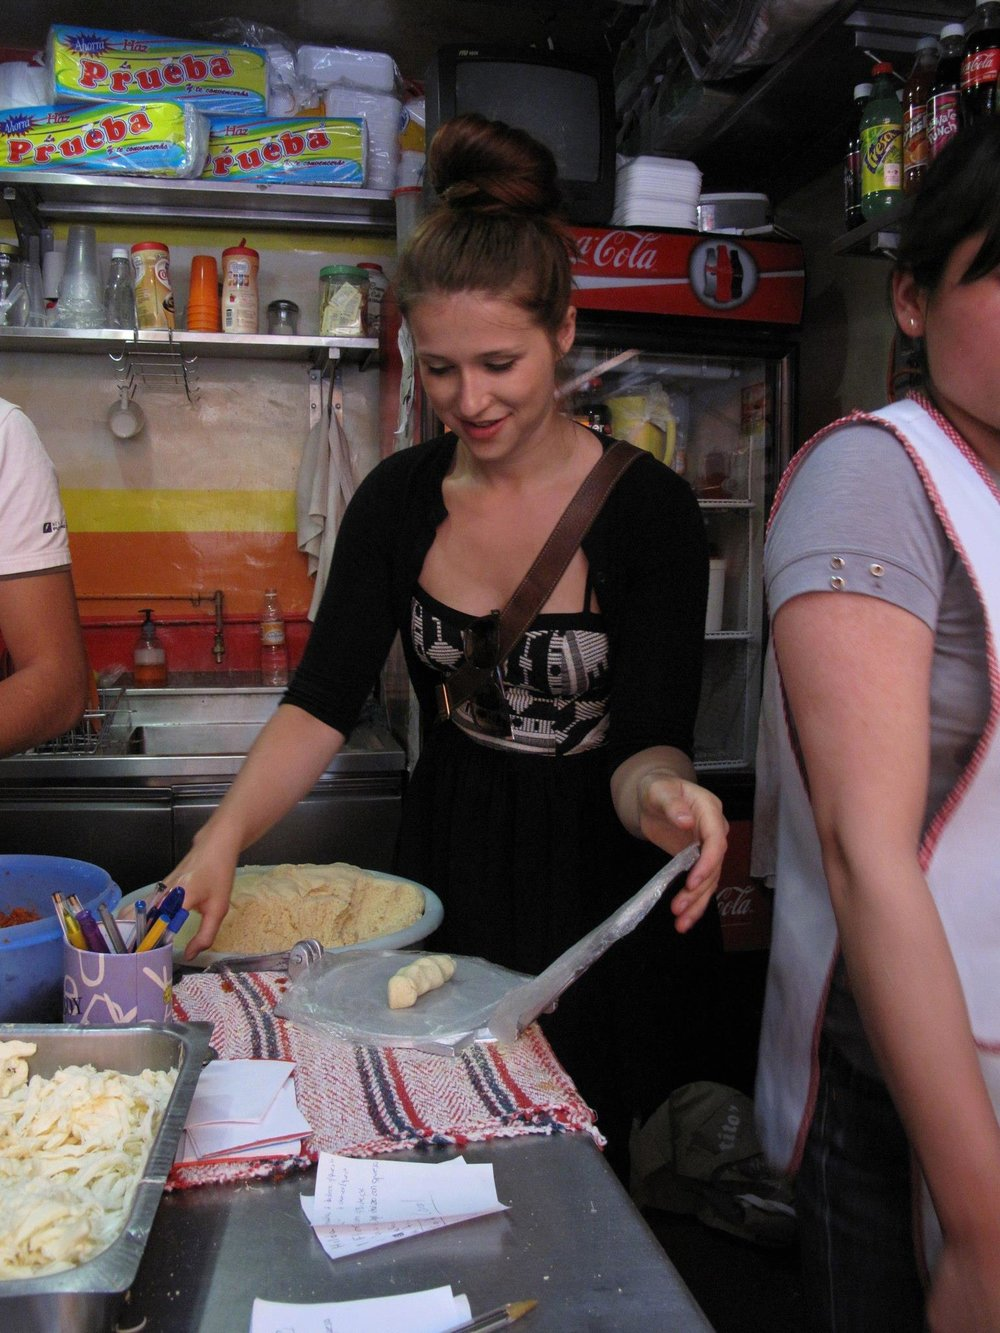 tortilla making in mx! - (p.s. you'll note i had a log of dough here, THIS IS INCORRECT DON'T DO THIS.)